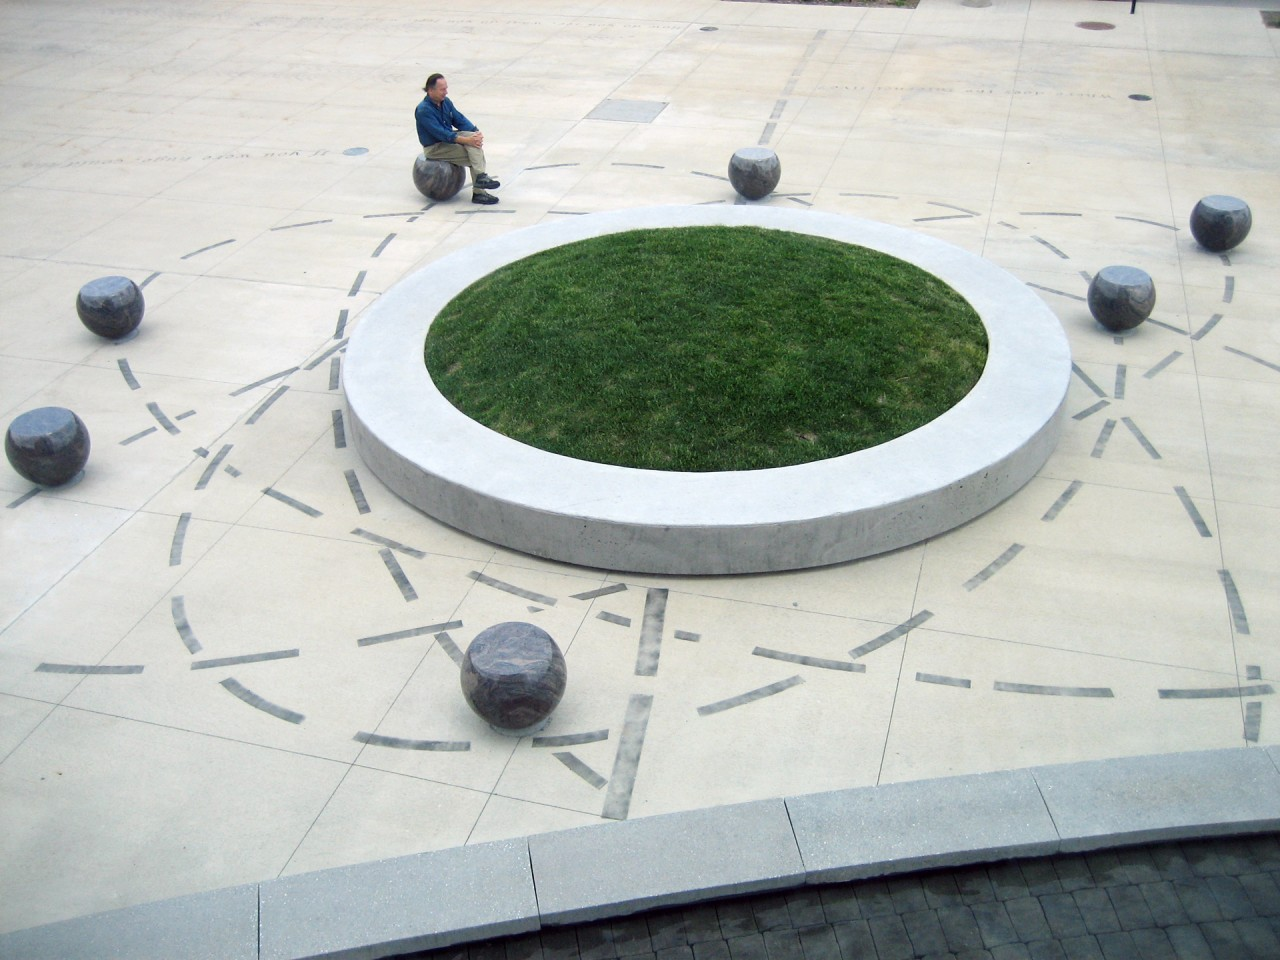 Detail of the Atom Seating Area: The dot of the question mark is also an atom with granite seats as the orbiting electrons.